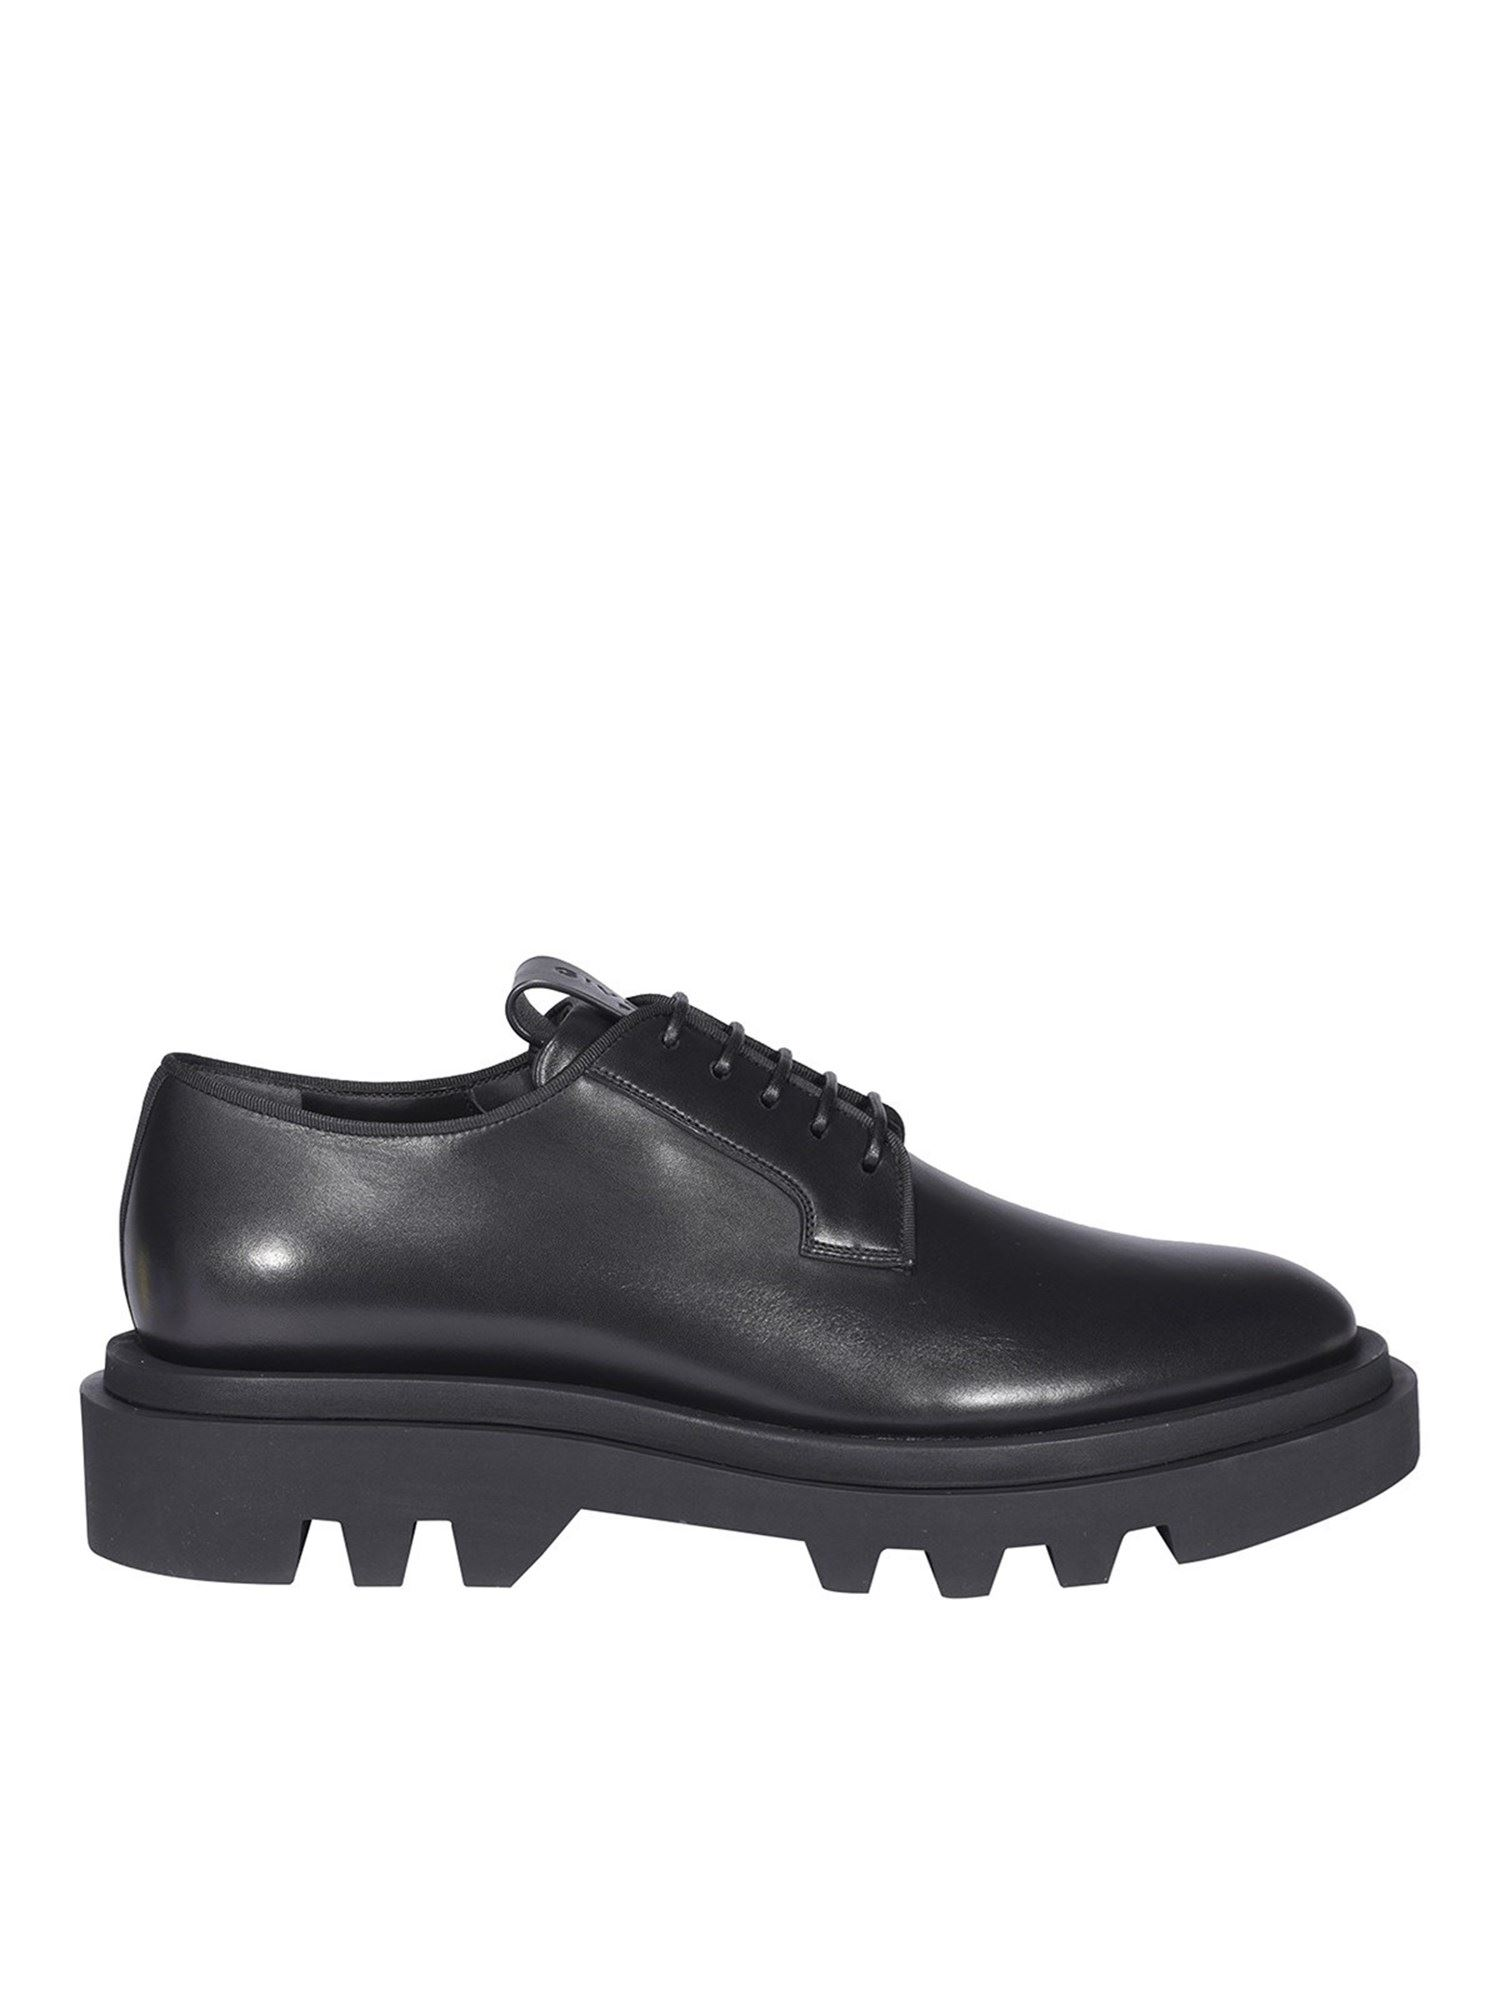 Givenchy BRUSHED LEATHER LACE-UPS IN BLACK